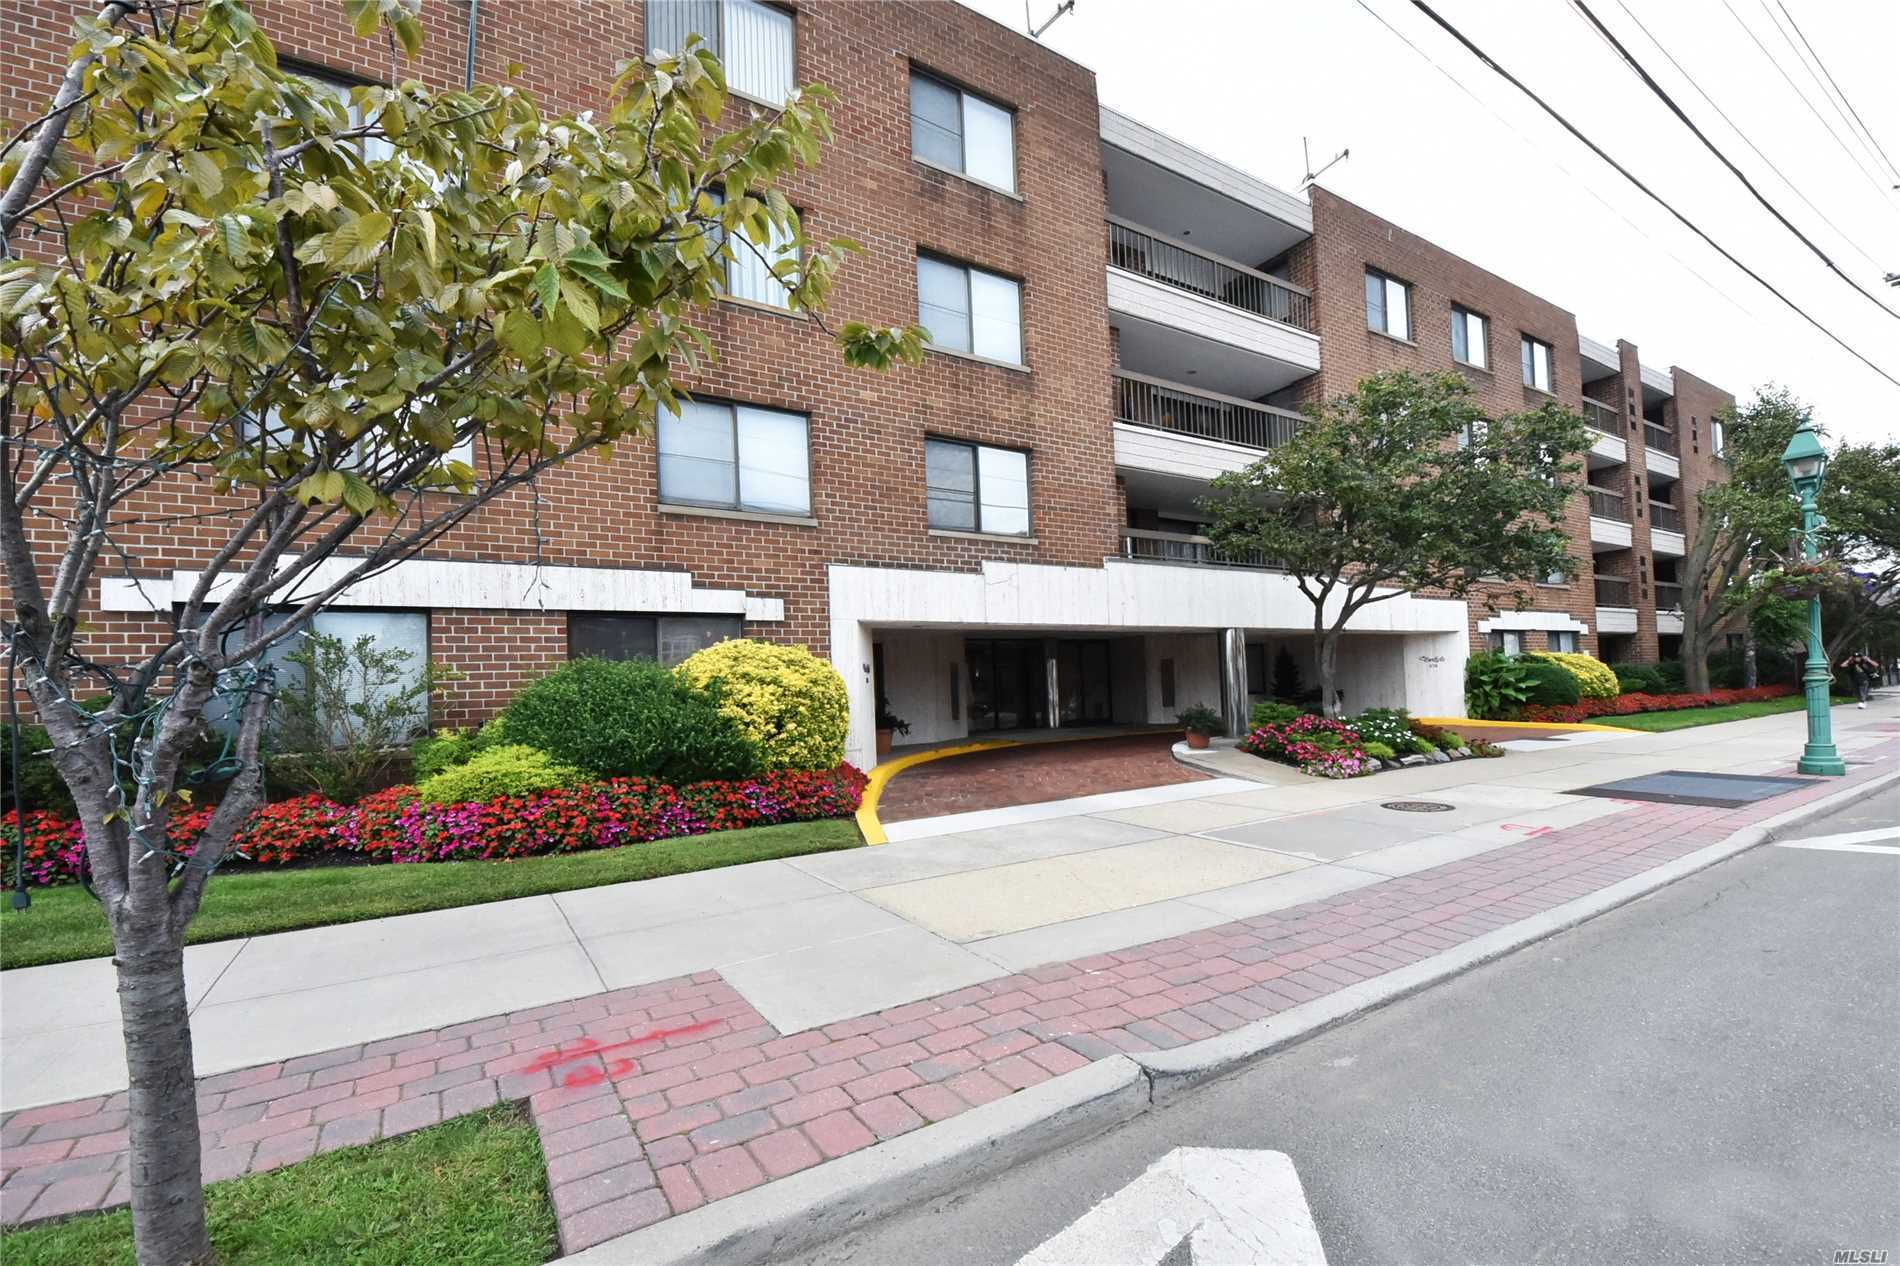 Beautiful Fully Renovated Condo In The Heart Of Lawrence, Gorgeous Kitchen With 2 Sinks, Hw Floors, Terrace, Doorman,  Elevator Building, Underground Parking, Washer And Dryer In Unit, Close To All, Move Right In!!!